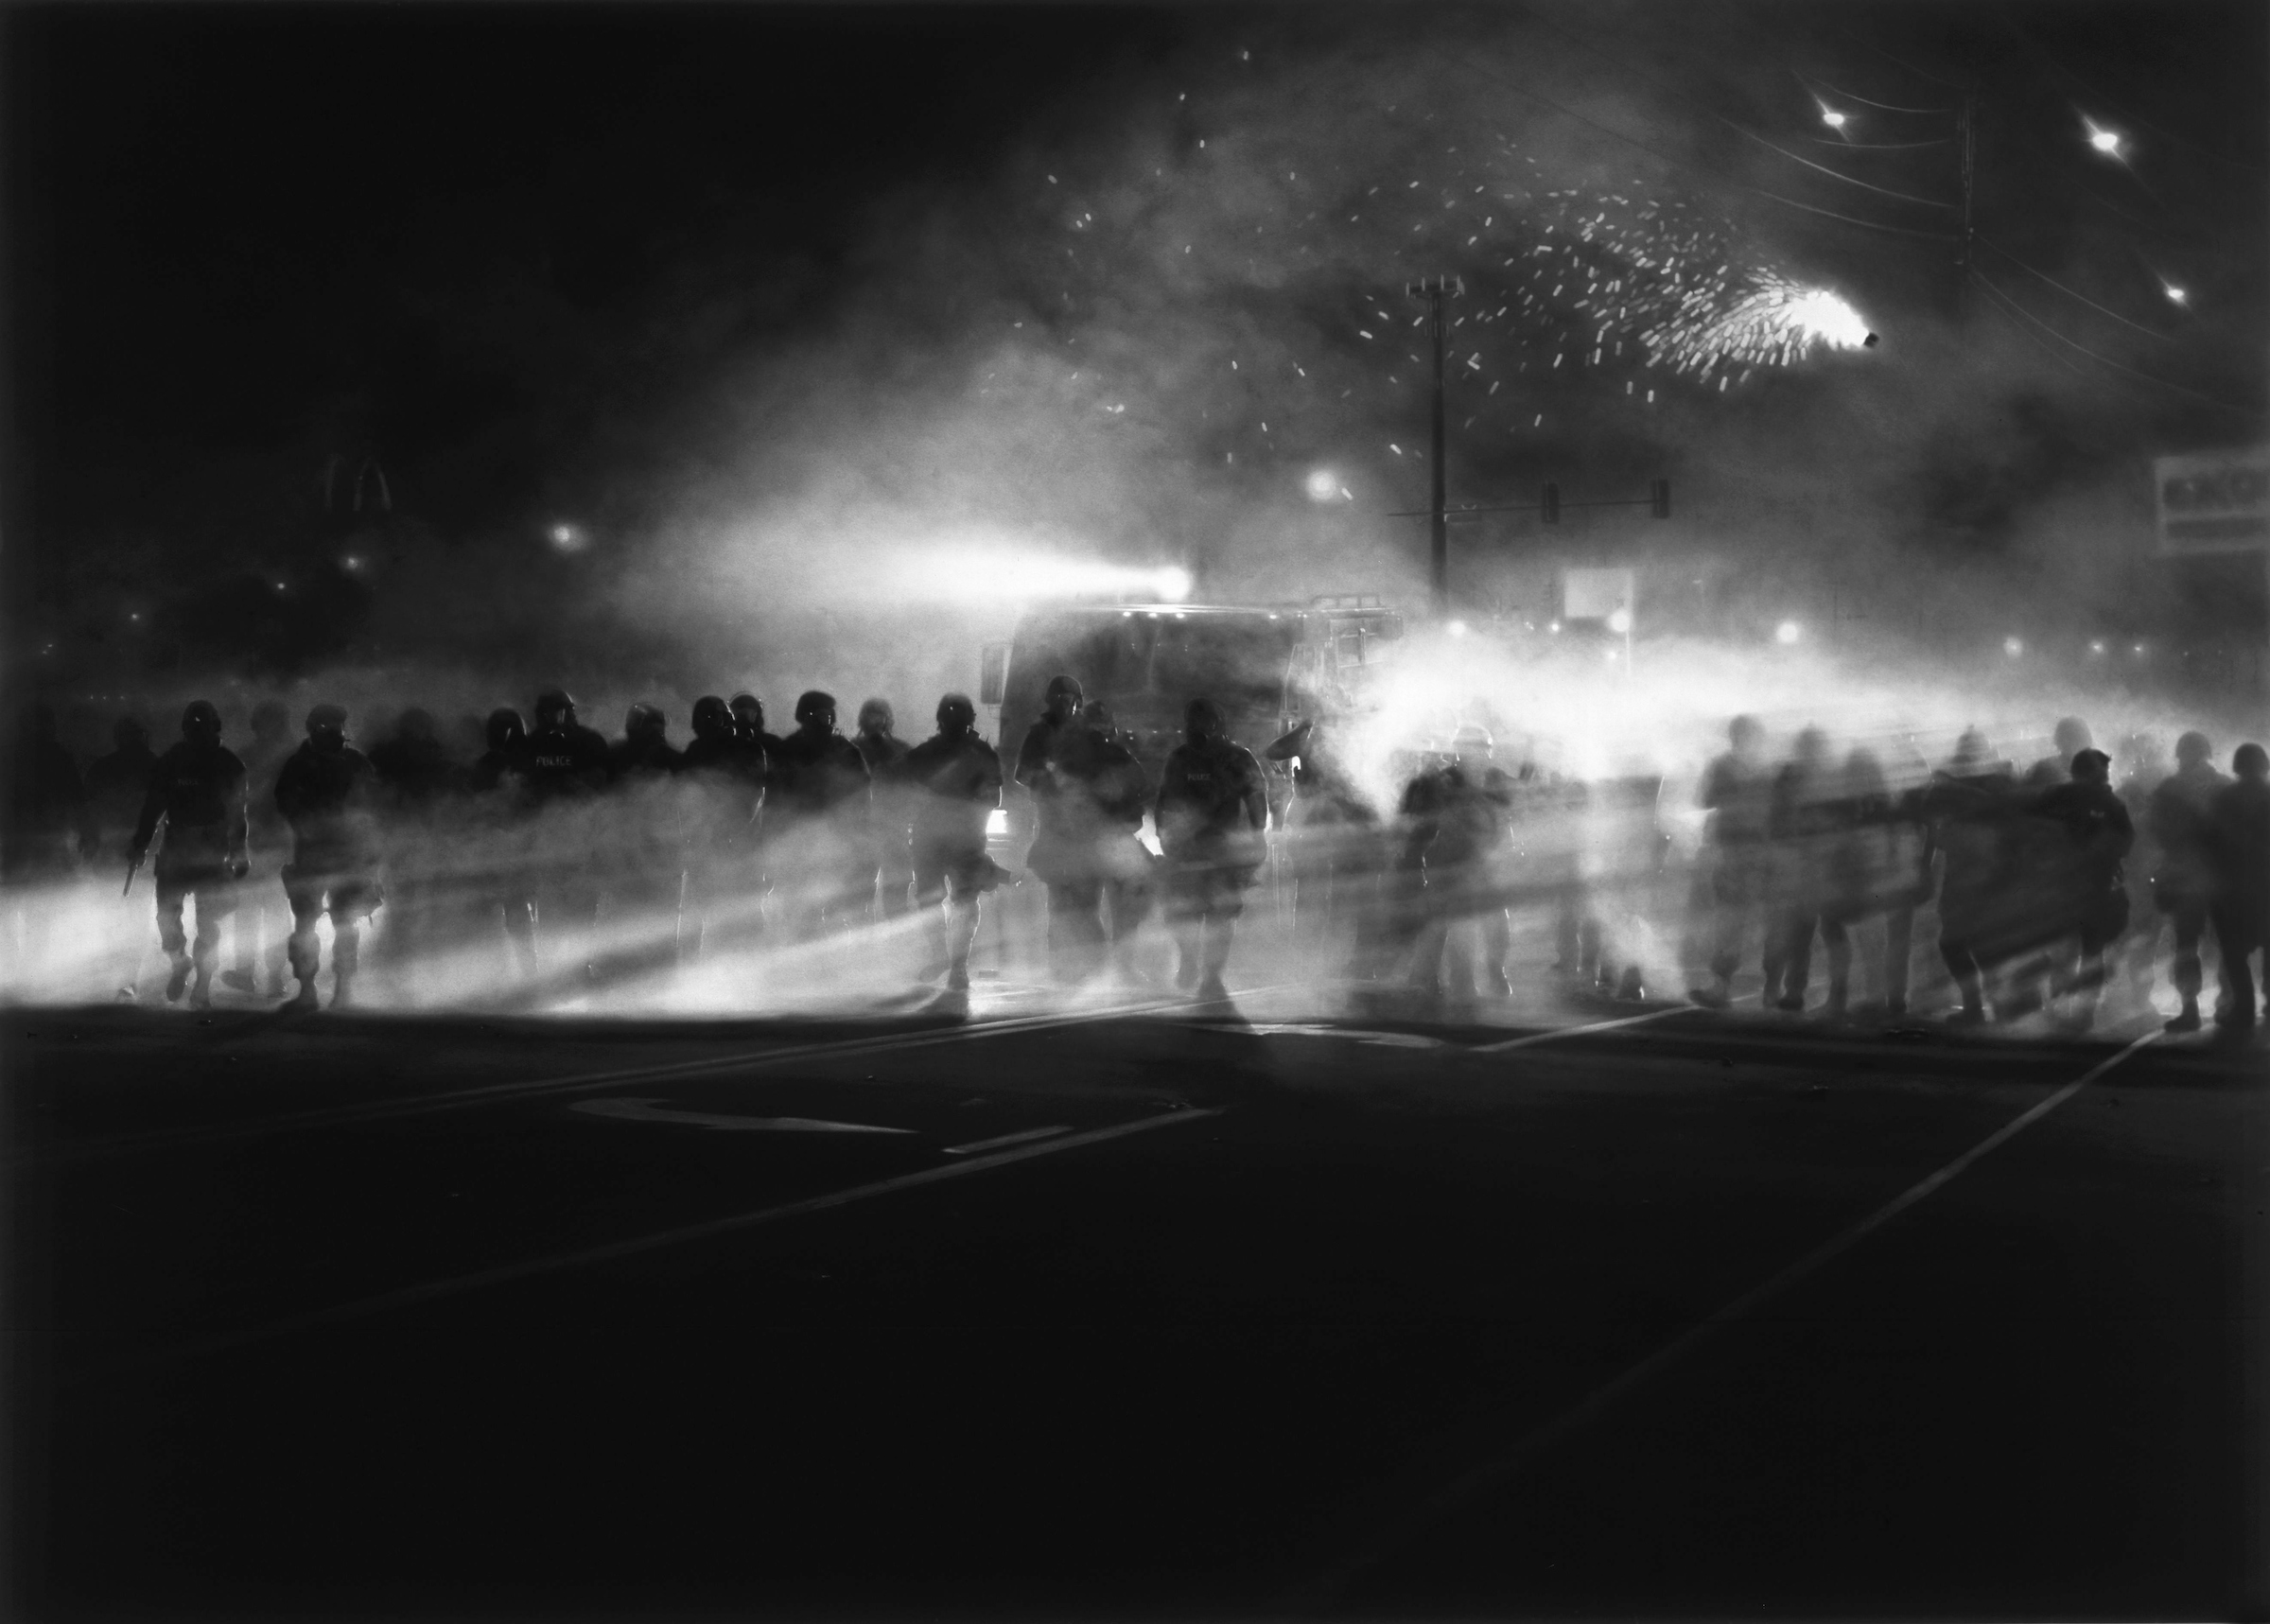 Robert Longo (American, born 1953). Untitled (Ferguson Police, August 13, 2014), 2014. Charcoal on mounted paper, 86 x 120 in. (218.4 x 304.8 cm). © Robert Longo, The Broad Art Foundation. (Photo: Courtesy of the artist and Petzel, New York)  The image may not be cropped or altered in any way, nor superimposed with any printing. Full credit must be given for the image.